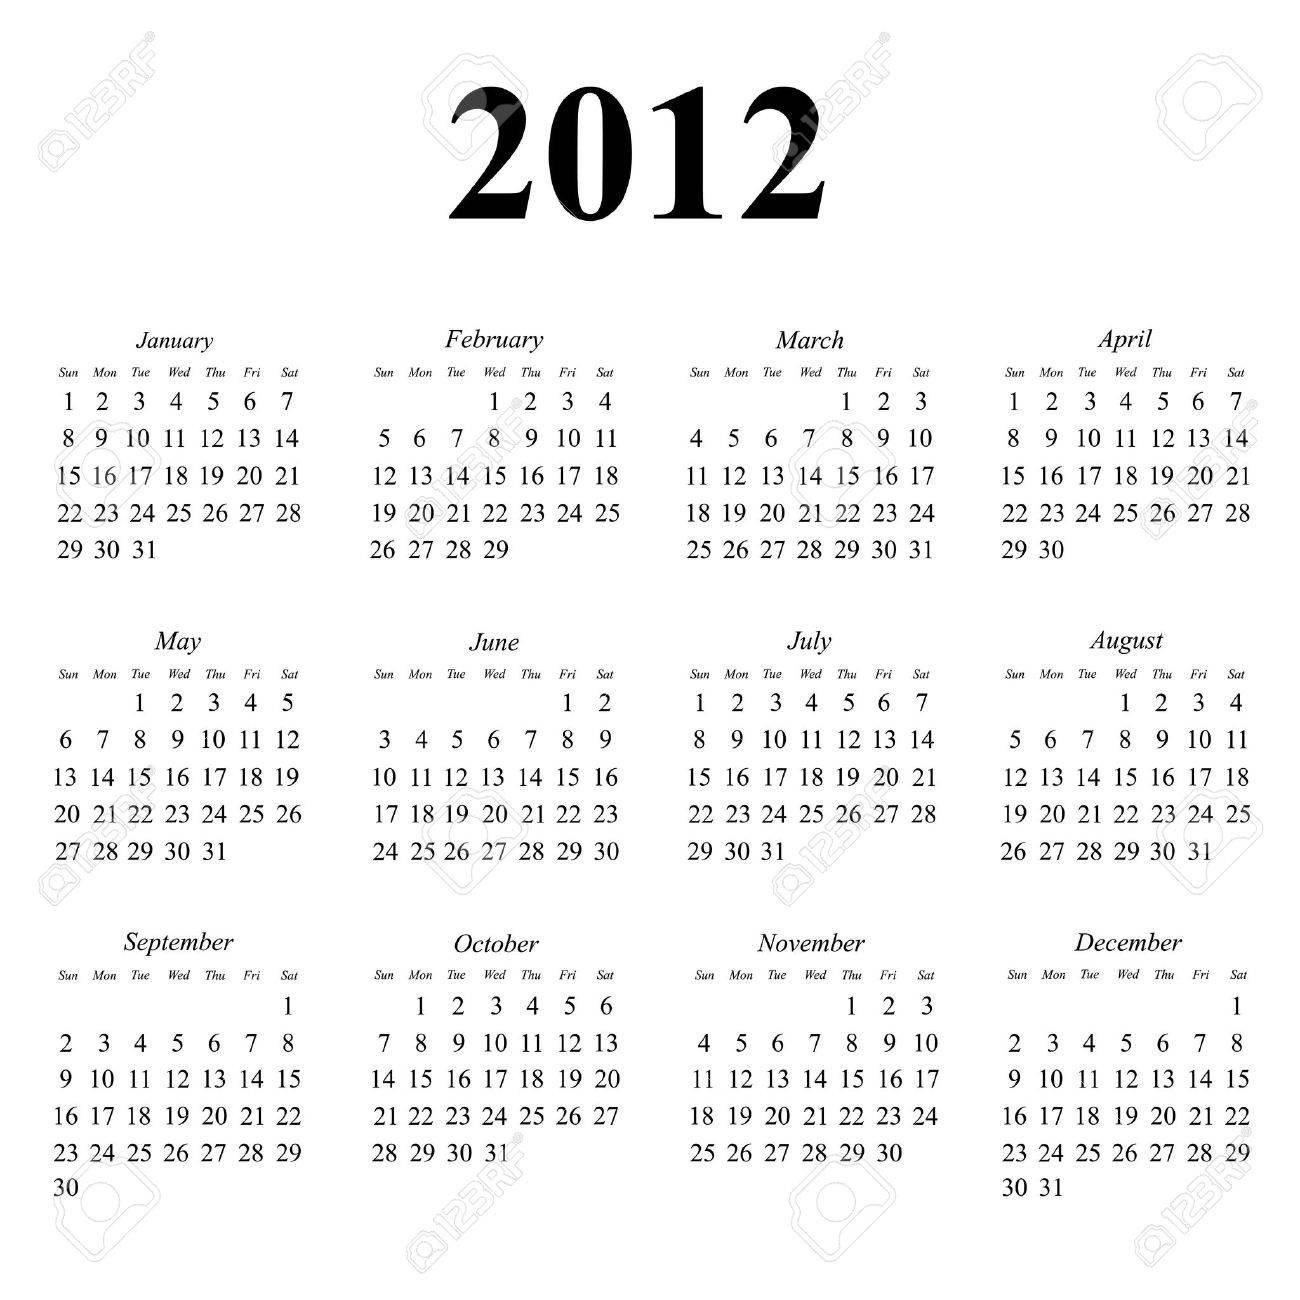 calendar simple clean layout royalty cliparts 2012 calendar simple clean layout stock vector 10756086